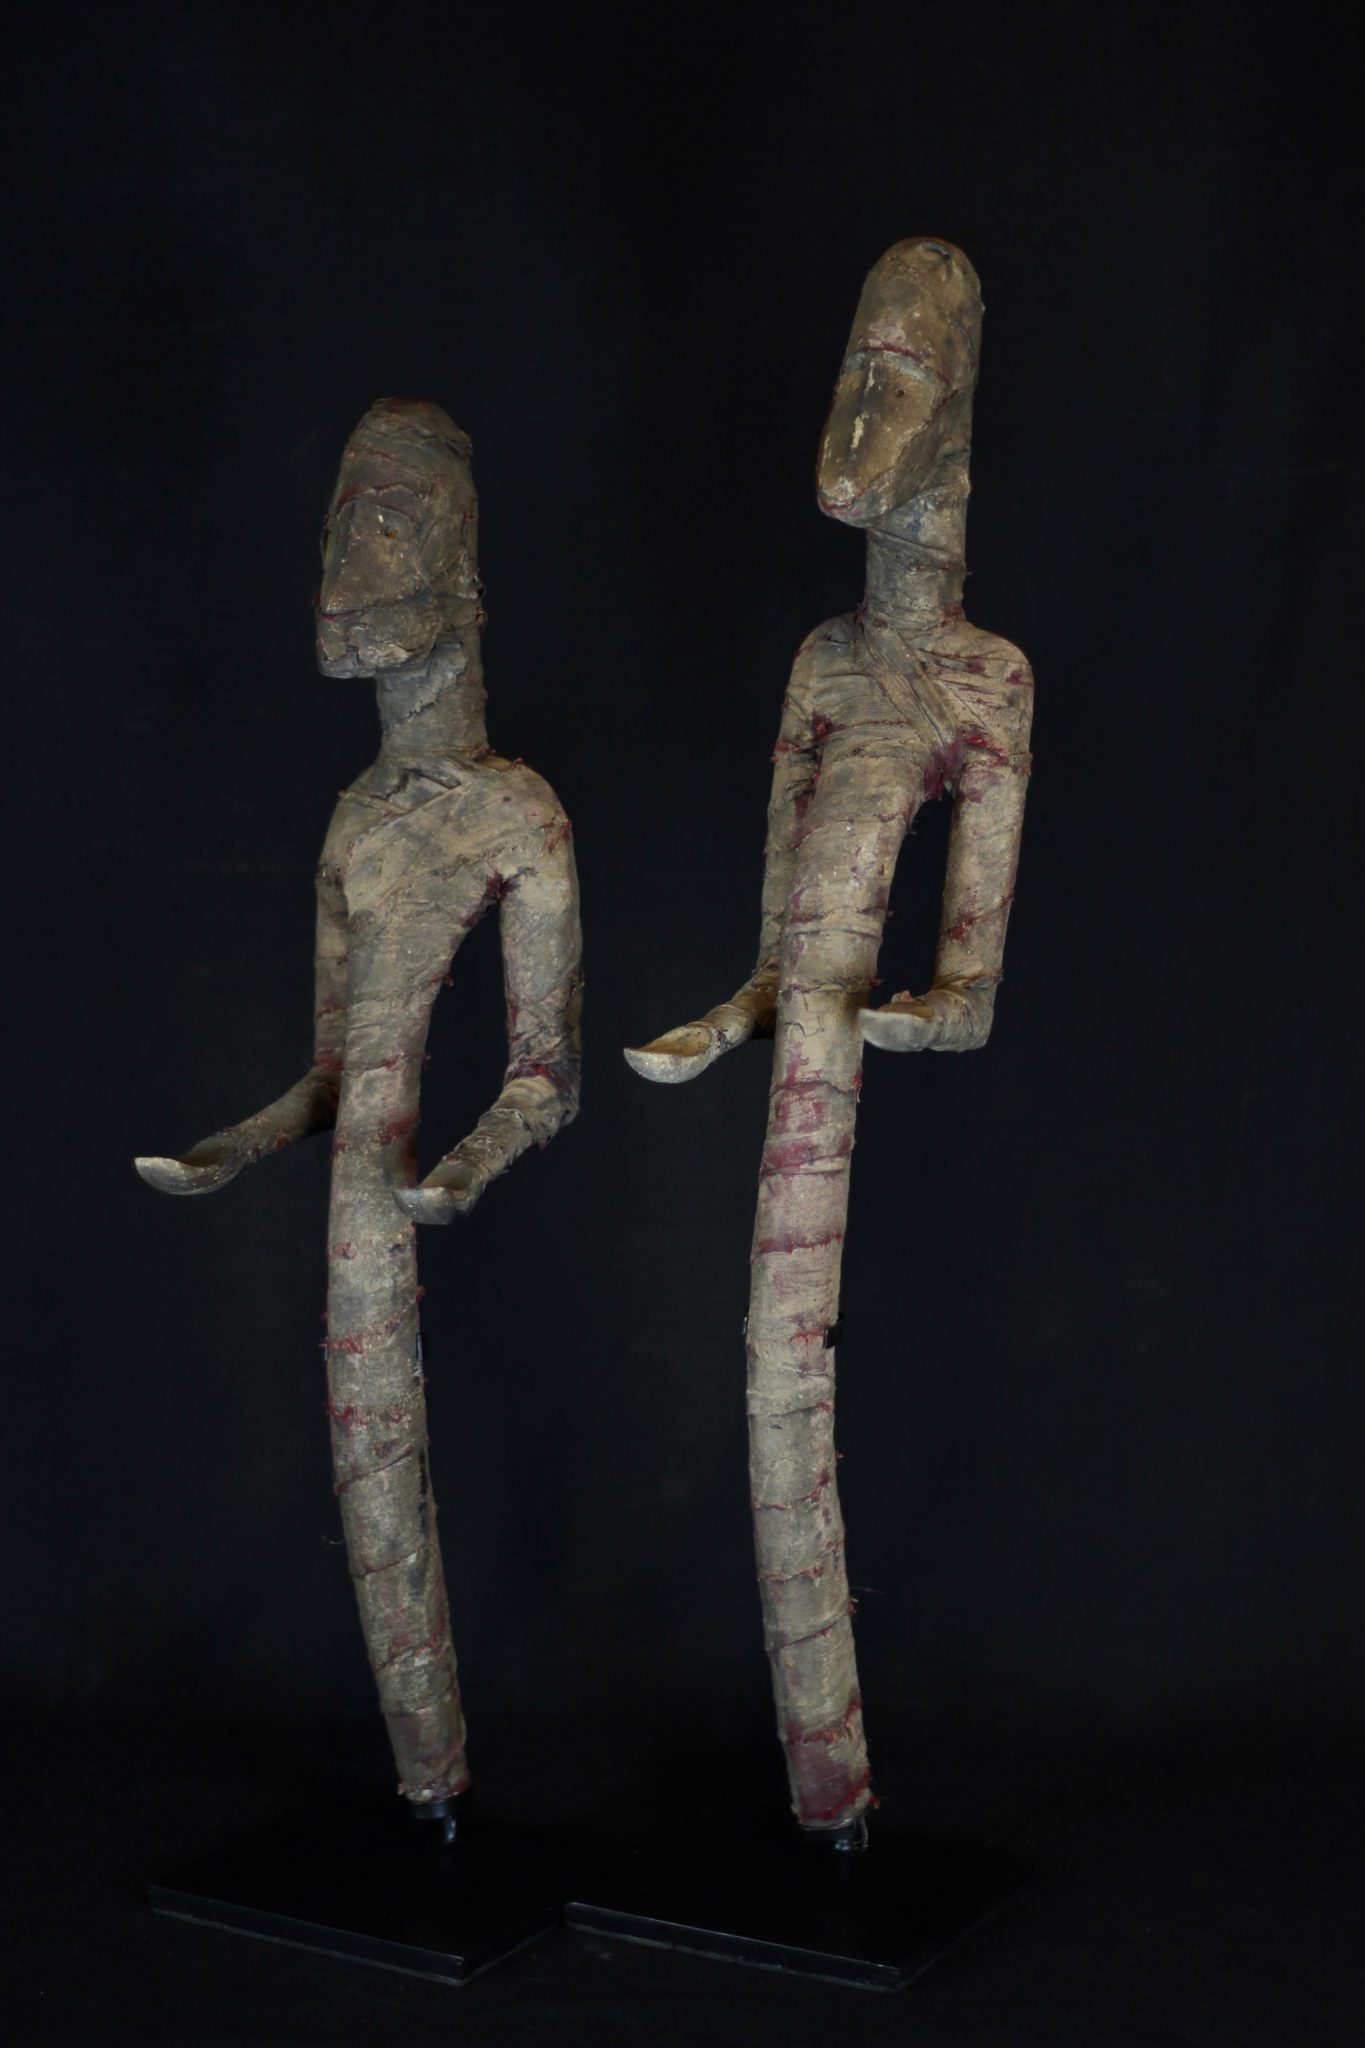 """Shaman Figure (rare), Atauro Island, Lesser Sunda Islands, Indonesia Early 20th c. Wood, cloth. Used to protect people from harmful spirits during rituals. Faded and patinated with use and age, original red color of cloth still visible. Dimensions: (left - 22 ½"""" 5 ½' x 7 ½"""", $1200.); (right - 25 ¼' x 4 ¼"""" x 6 ½"""", $1200.)"""